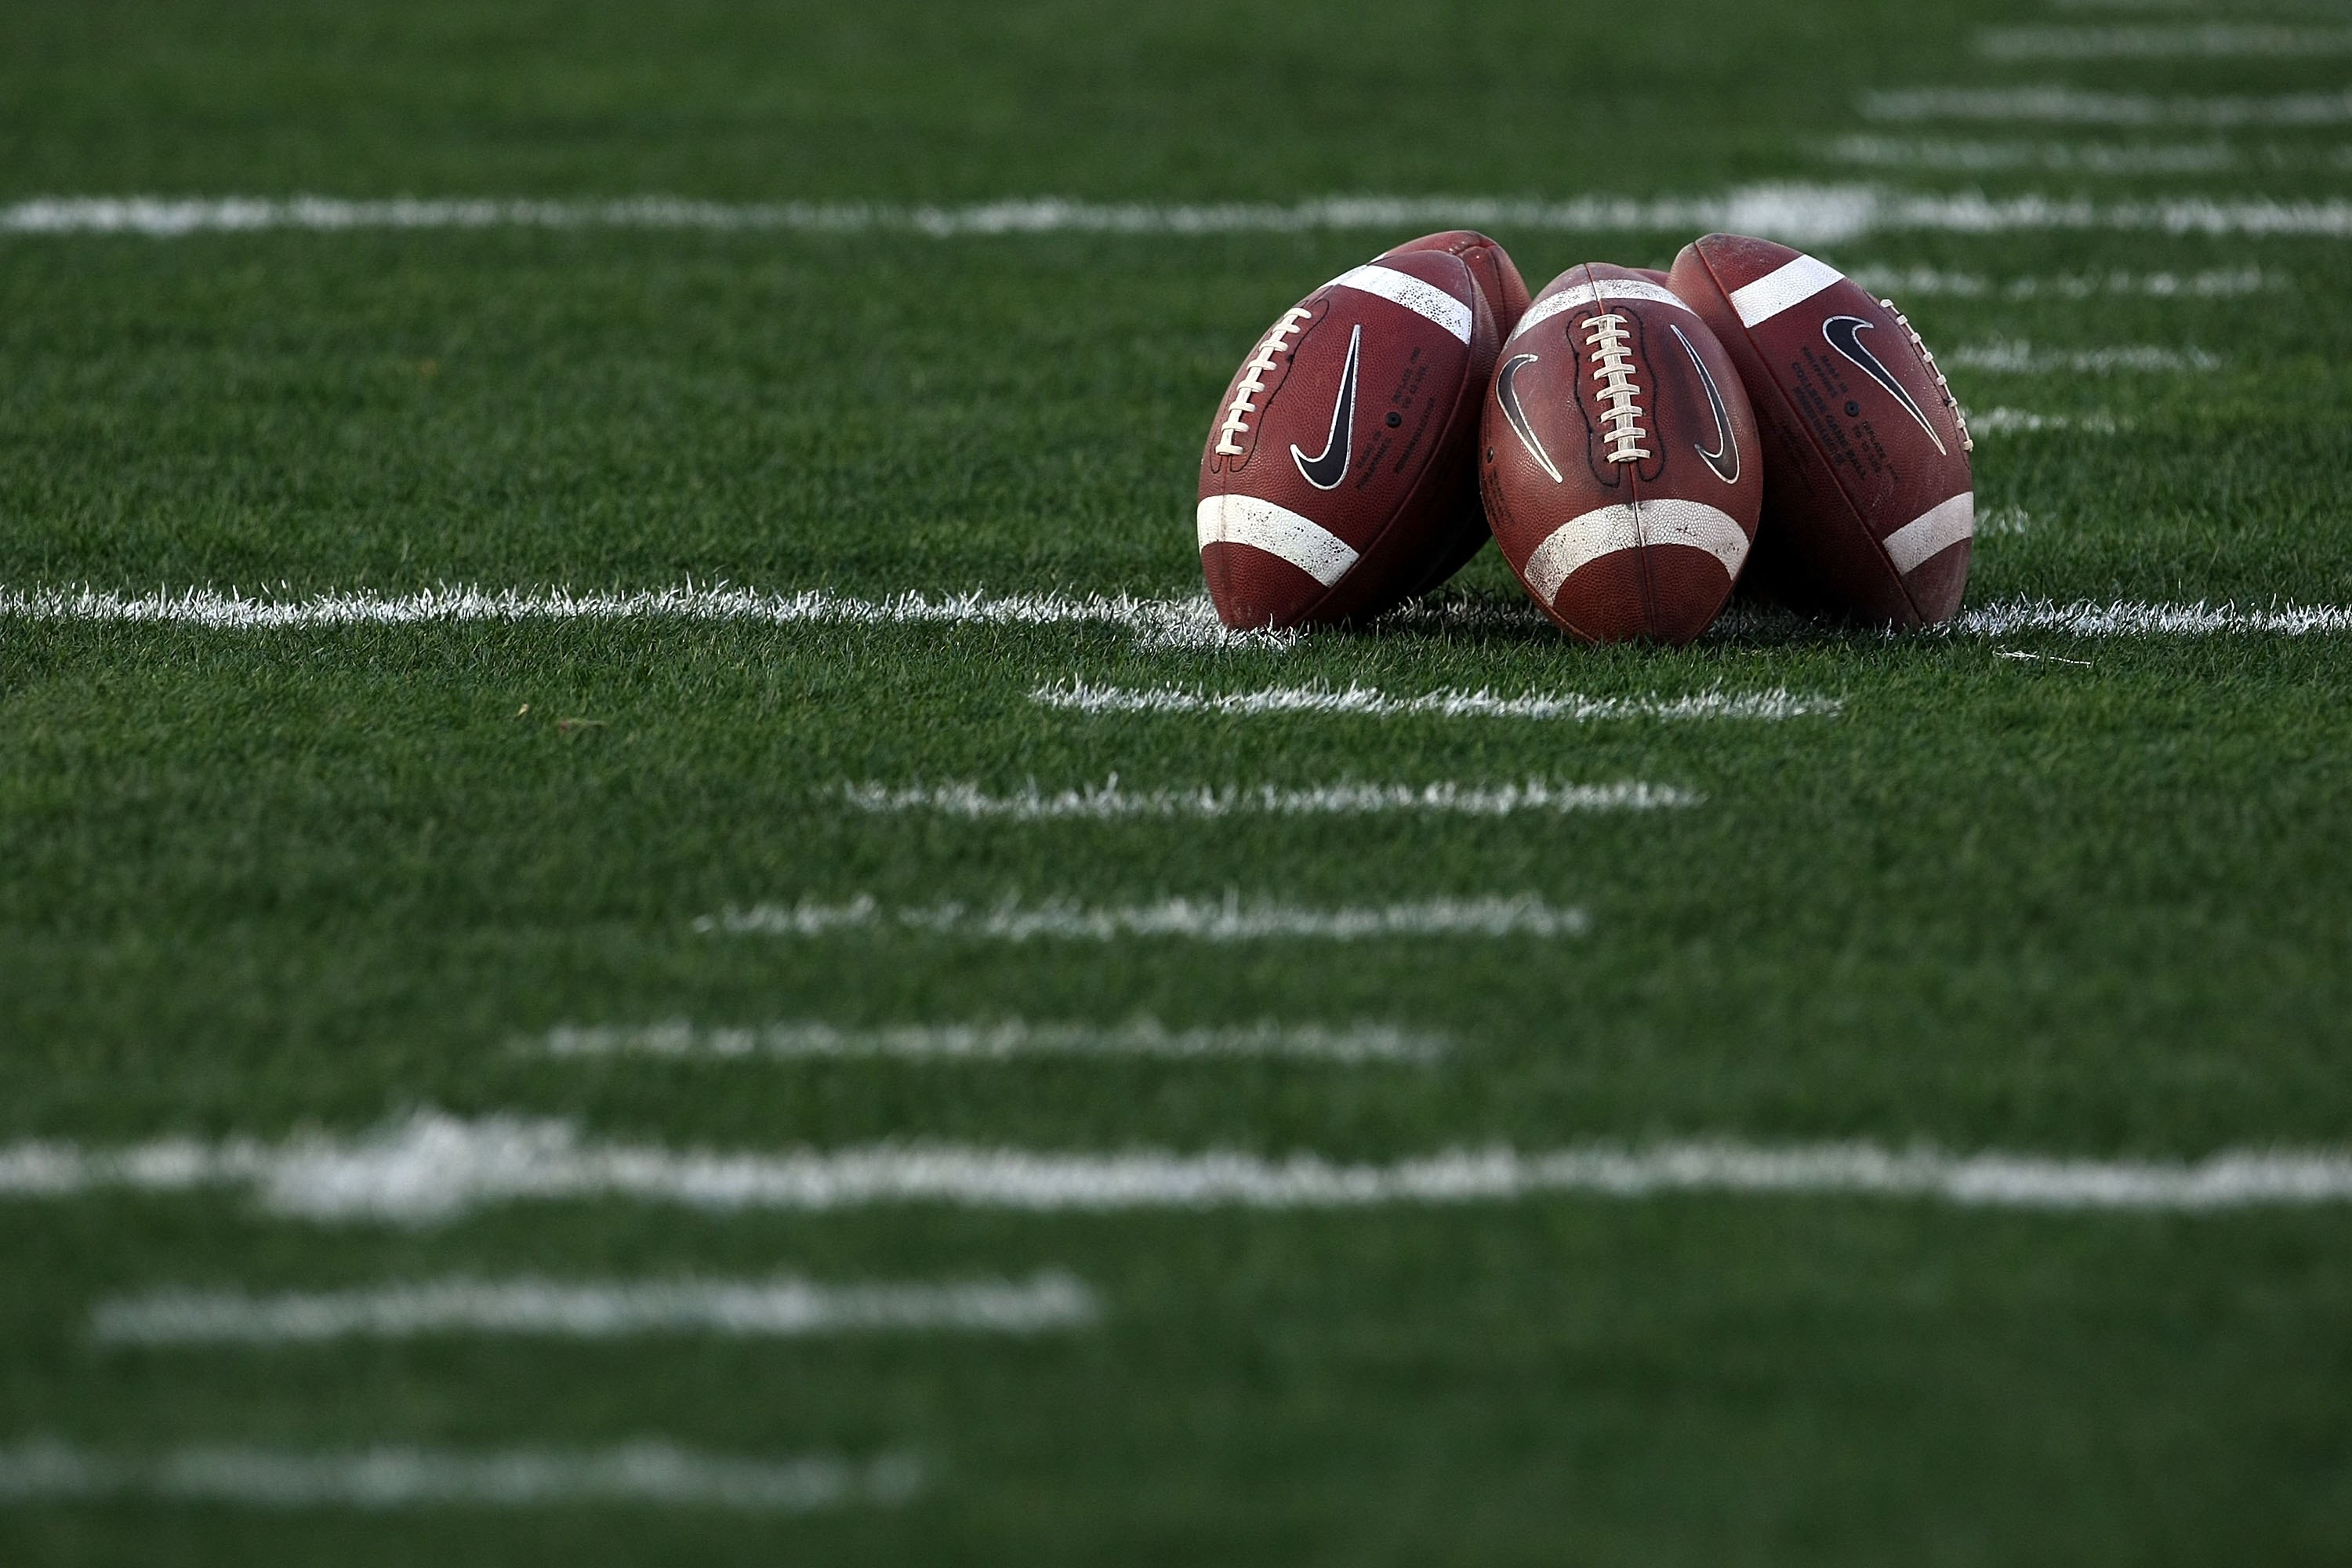 PASADENA, CA - JANUARY 07:  A detailed picture of footballs on the field prior to the Citi BCS National Championship game between the Texas Longhorns and the Alabama Crimson Tide at the Rose Bowl on January 7, 2010 in Pasadena, California.  (Photo by Step